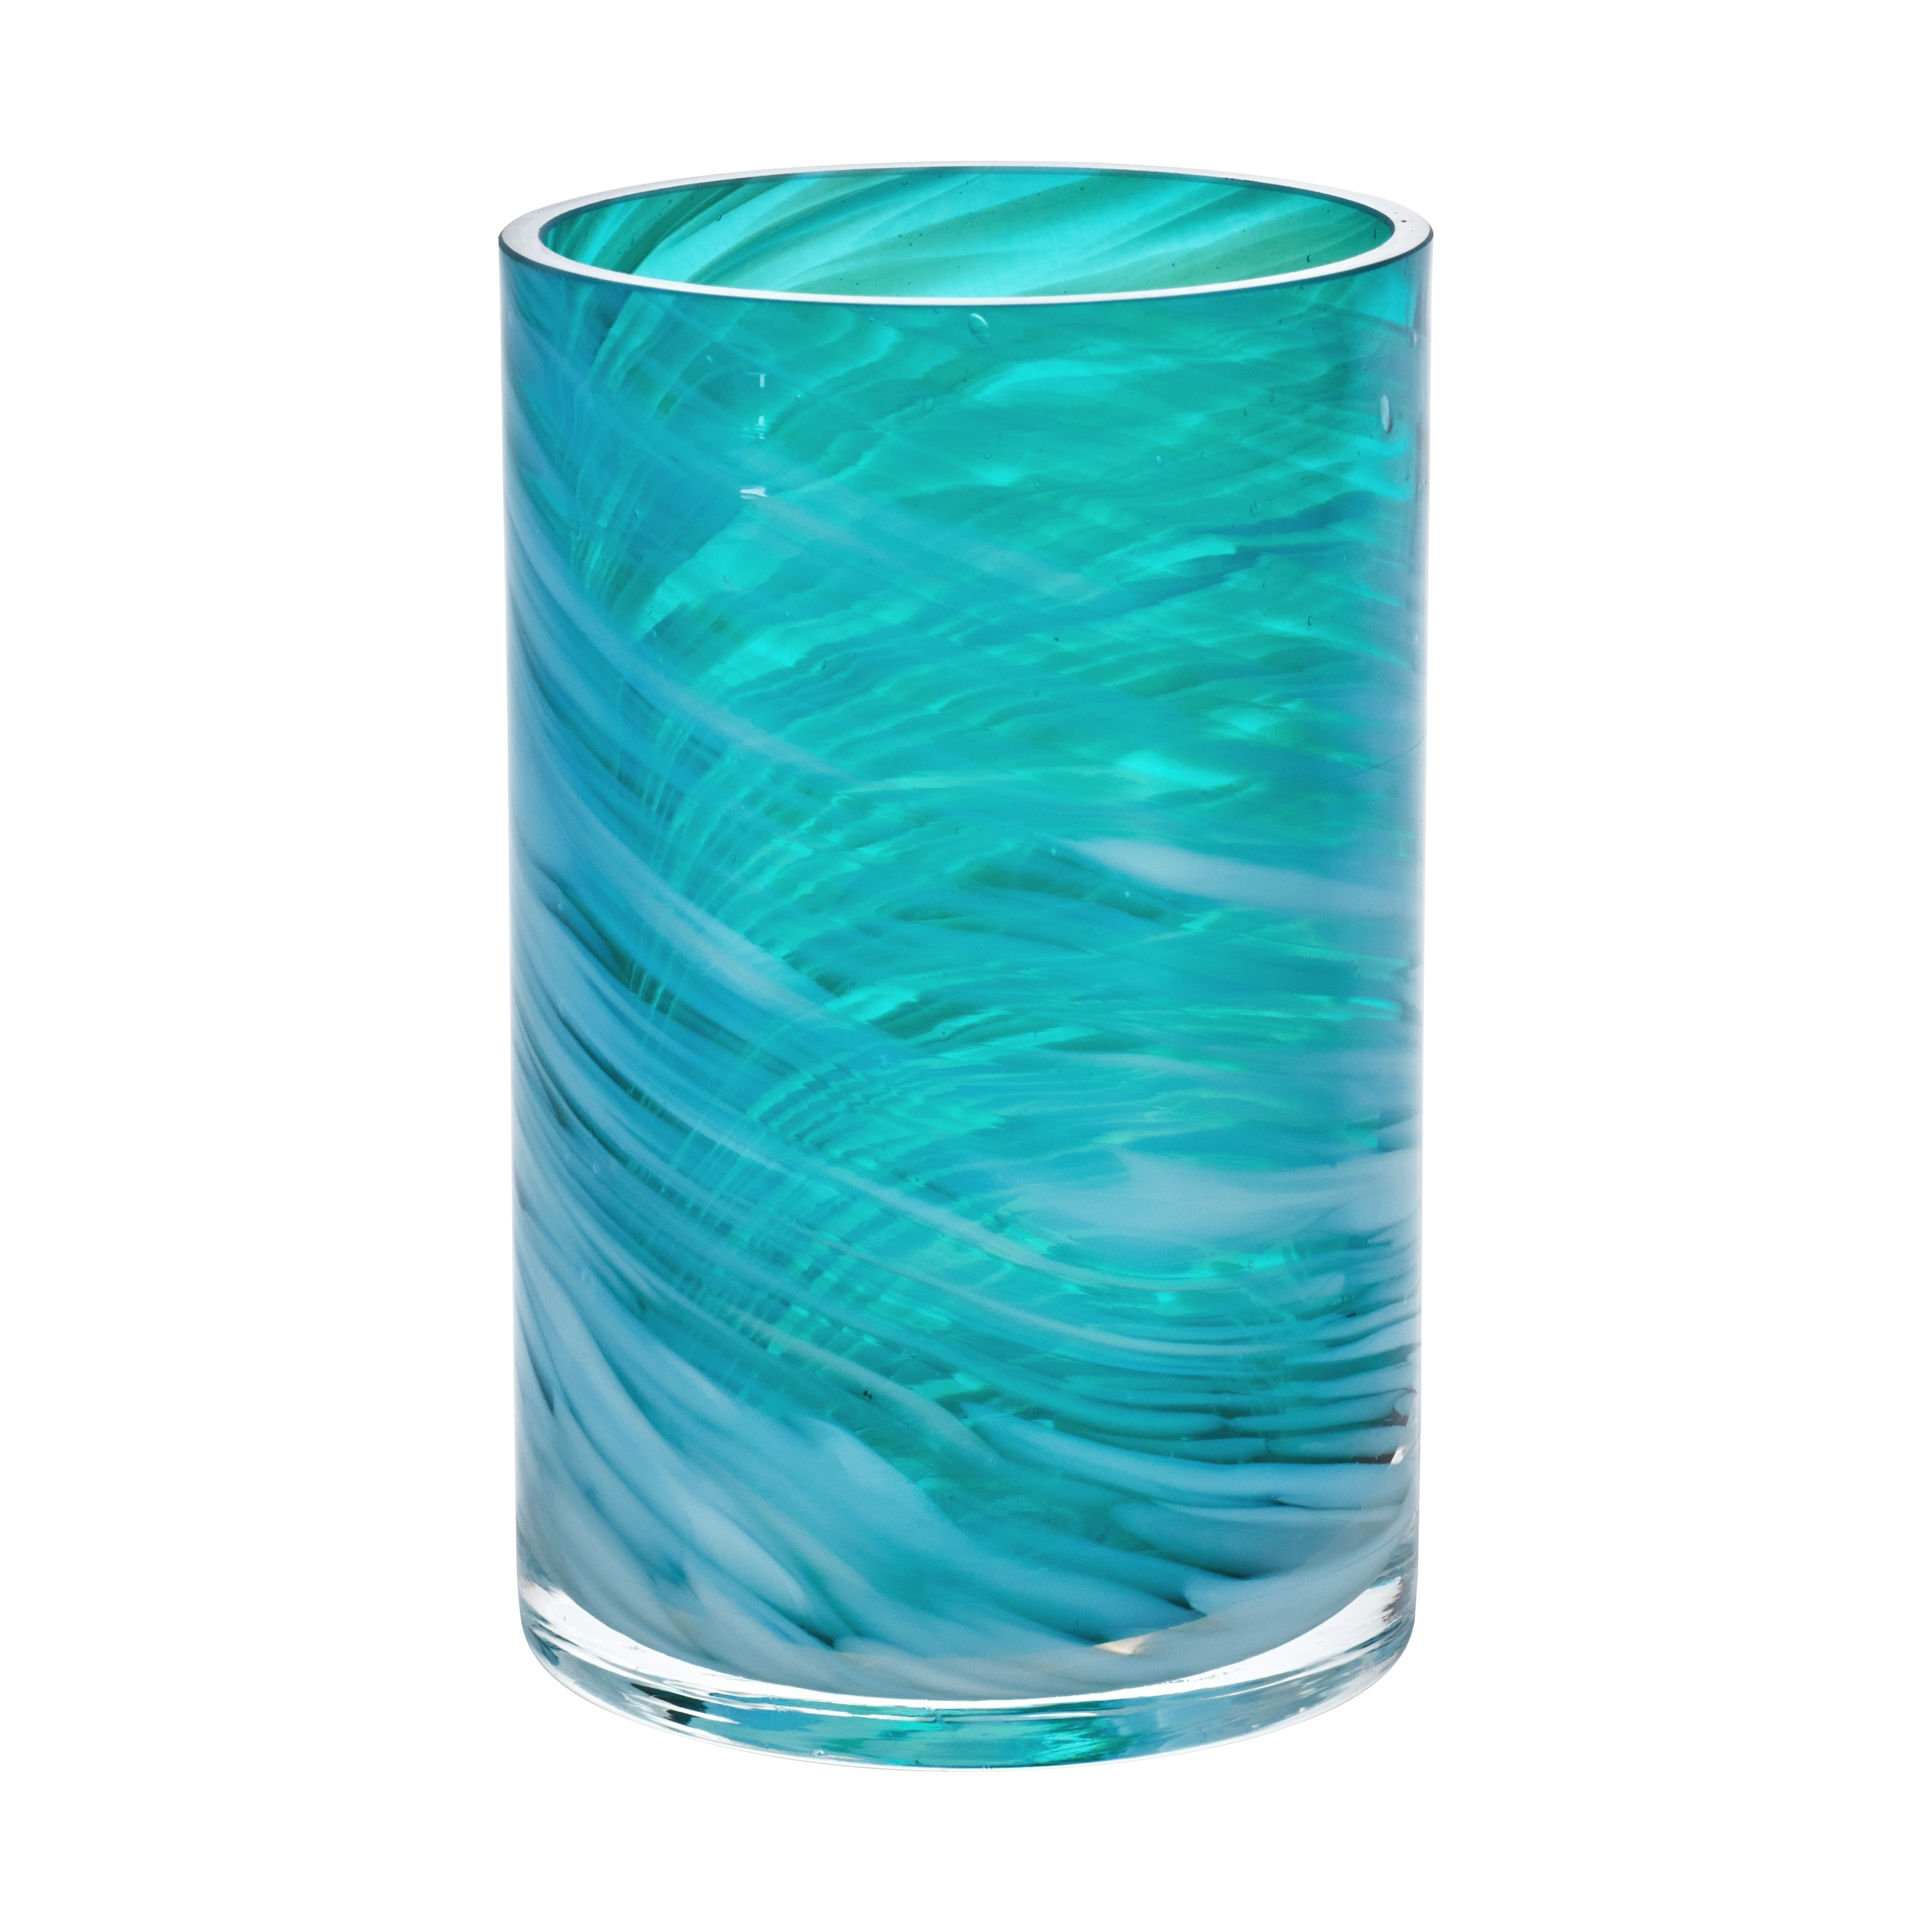 Shop Five Queens Court Caribbean Reef Handmade Glass Bathroom Accessories    On Sale   Free Shipping On Orders Over $45   Overstock.com   20555029